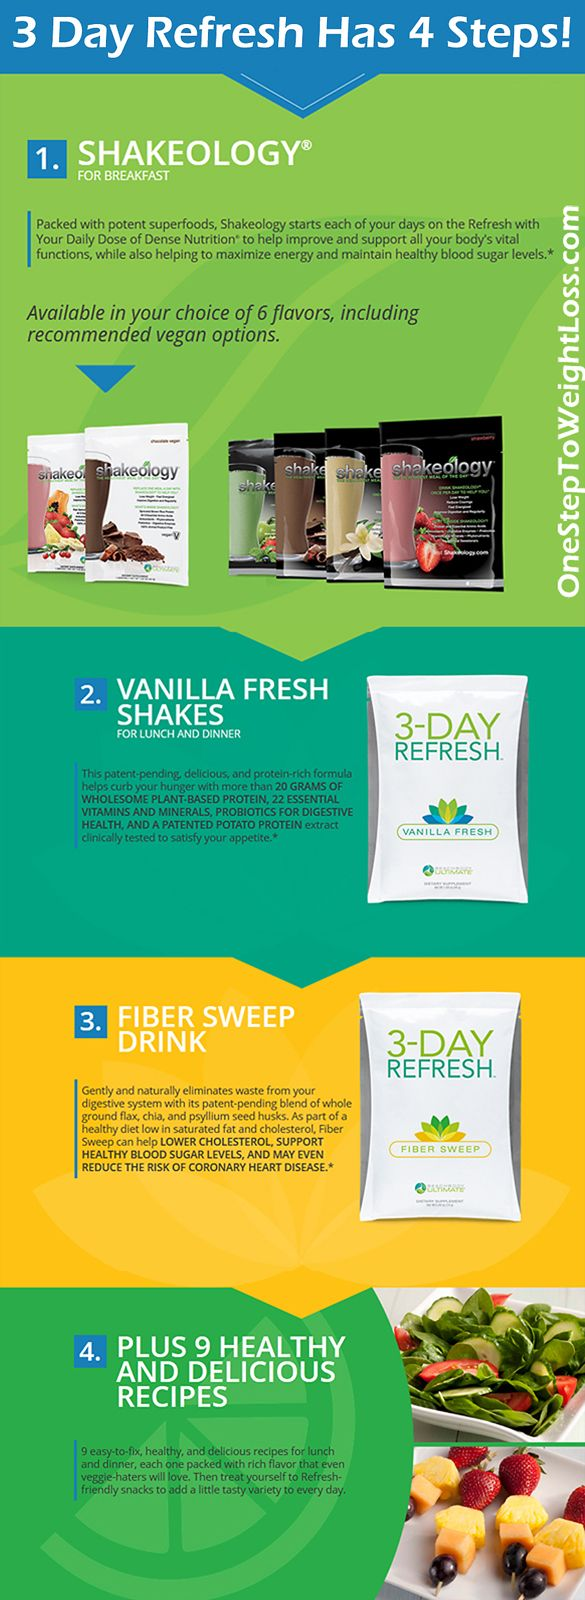 The Beachbody 3 Day Refresh results are insane from only following 4 simple steps! You lose up to 10 pounds & feel healthier in only 3 days! Sign up and get me as your FREE coach journeytofab@gmail.com